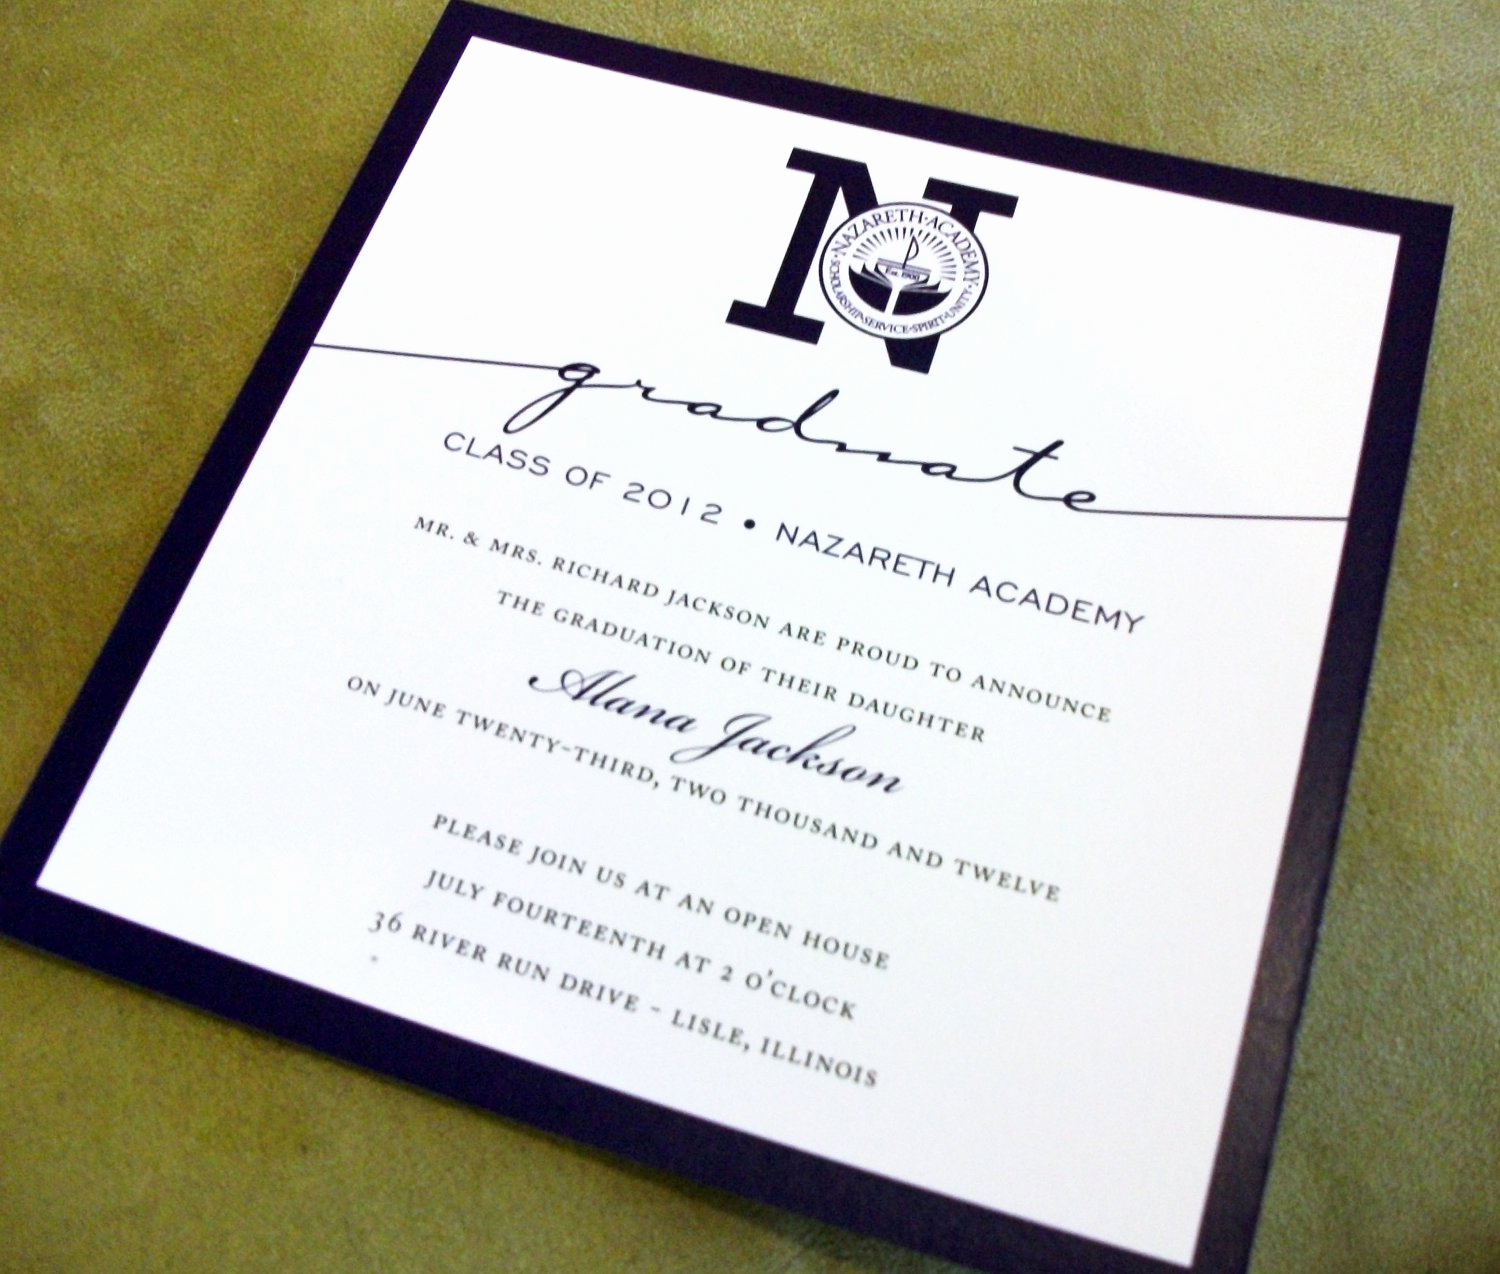 College Graduation Invitation Wording Samples Luxury formal College Graduation Invitation Wording